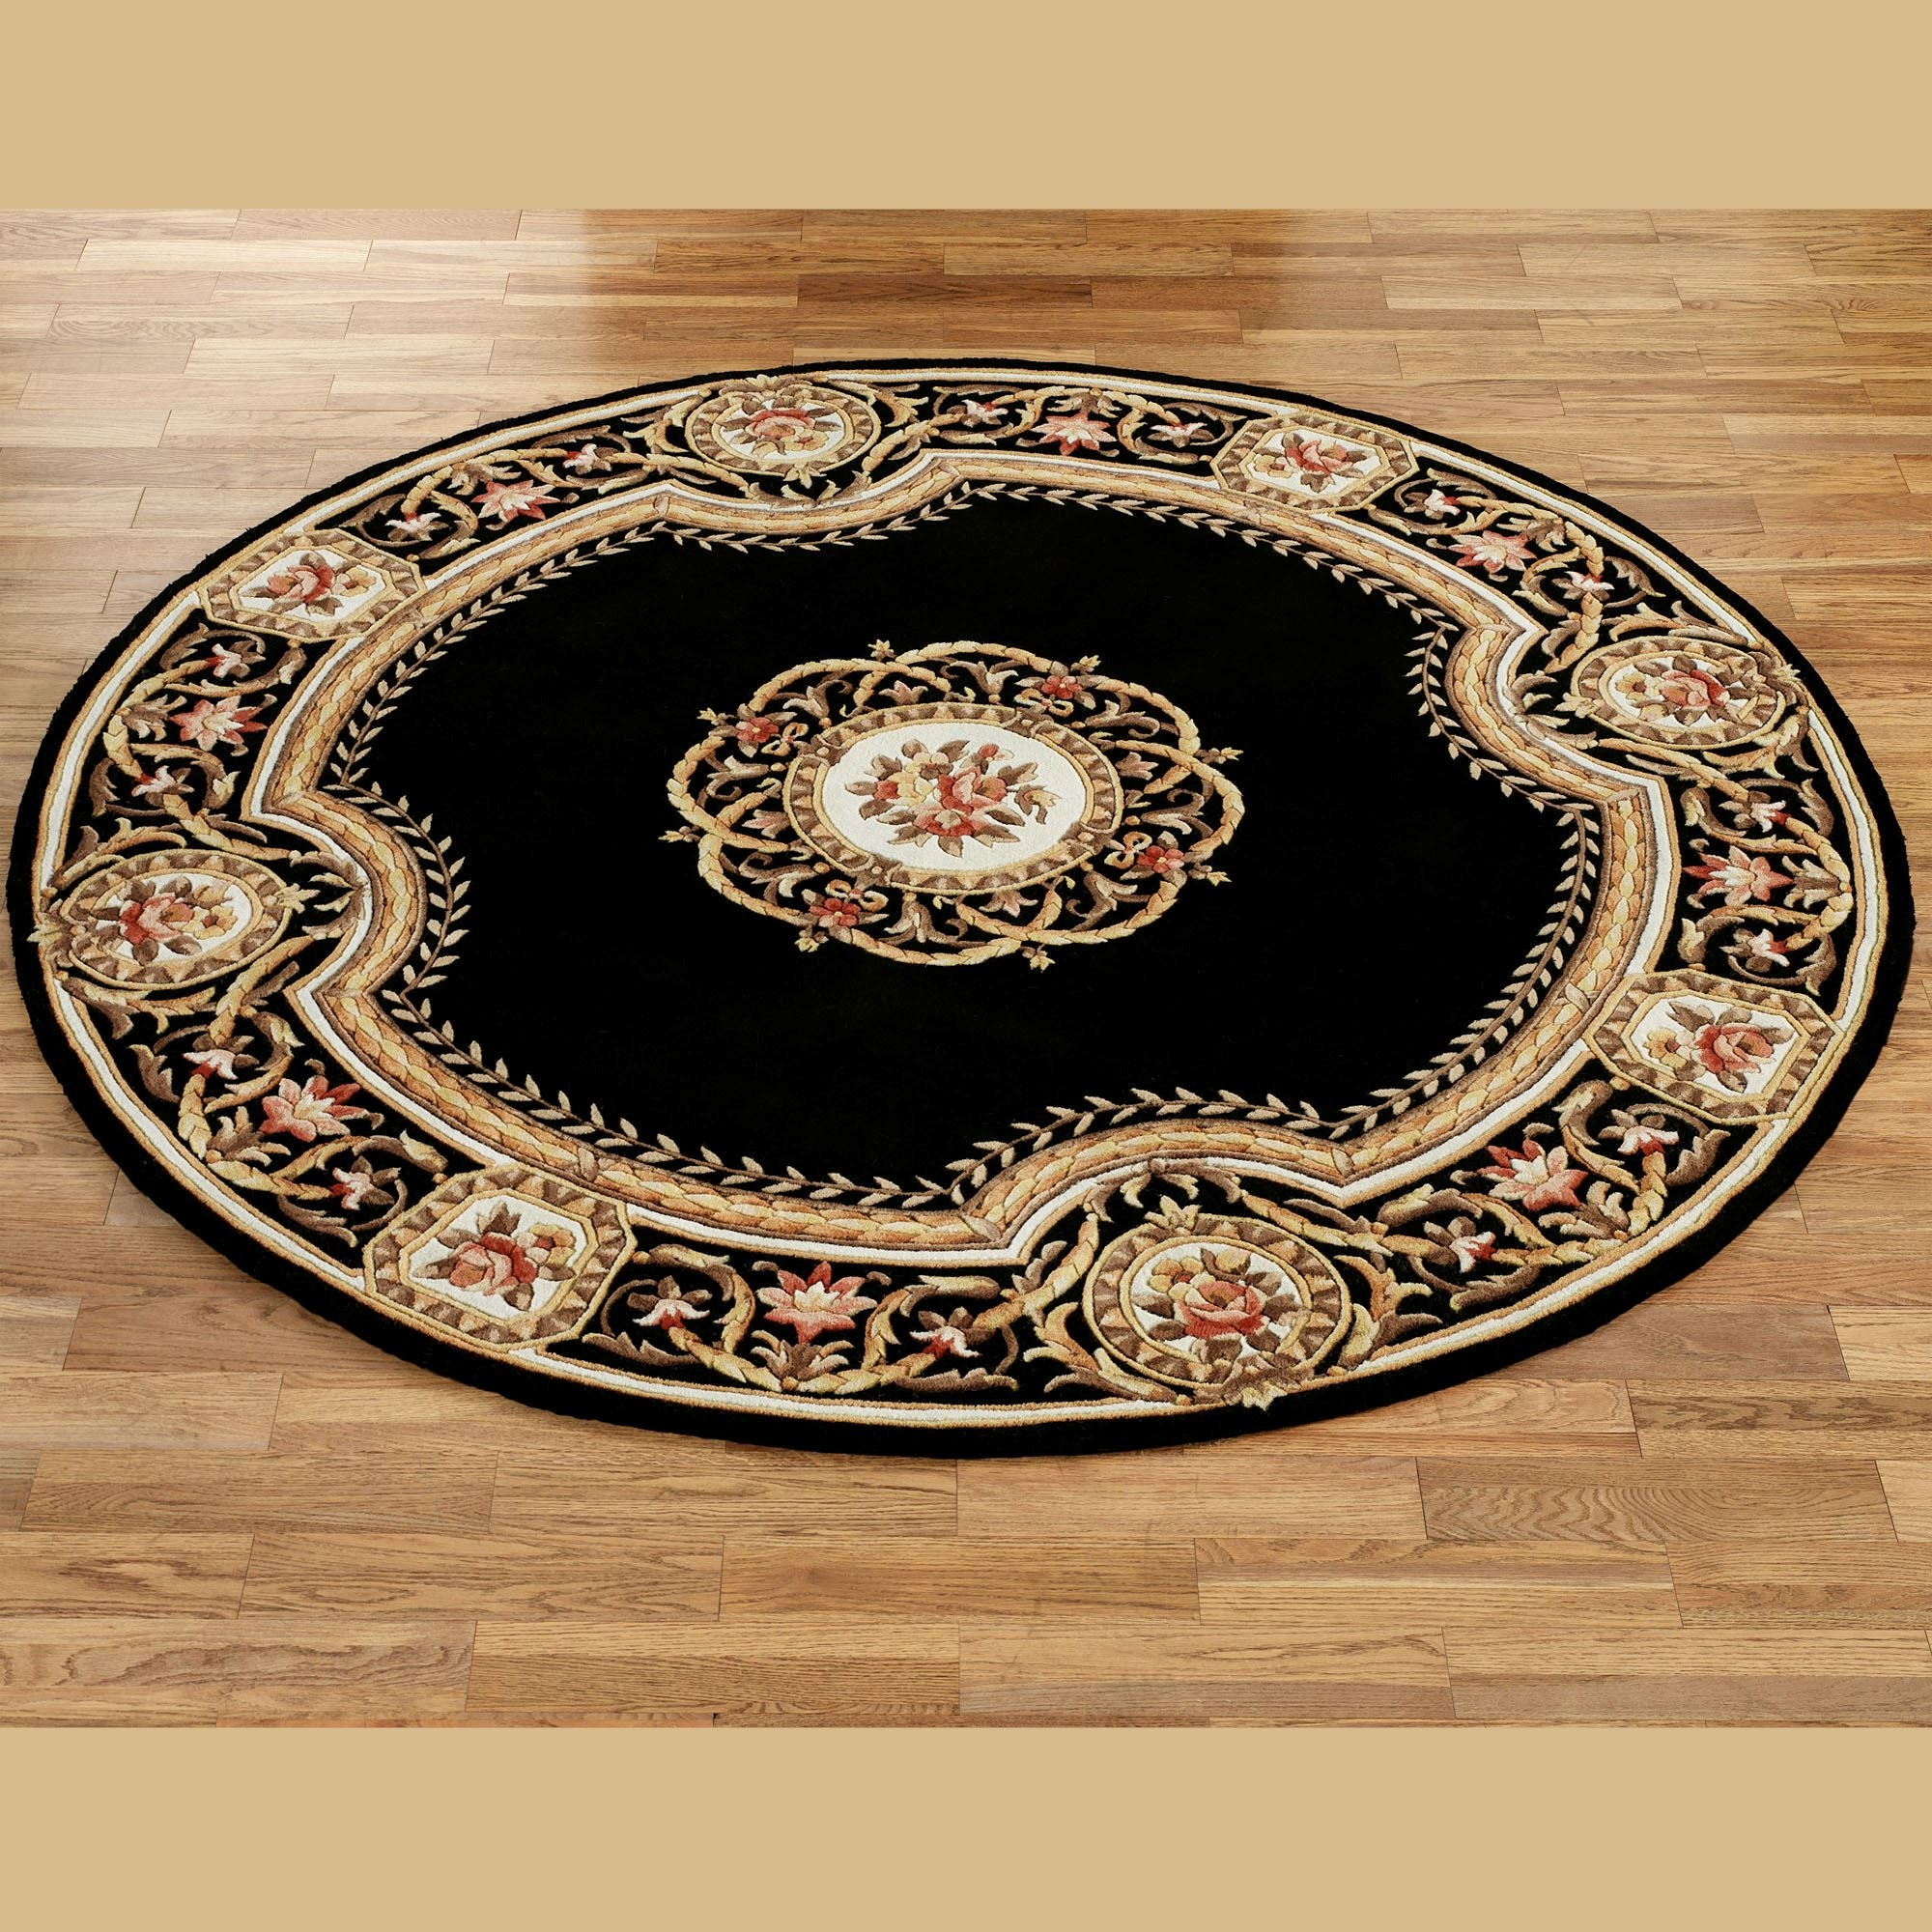 Elegant Medallion Round Wool Area Rugs With Regard To Round Wool Rugs (View 11 of 15)